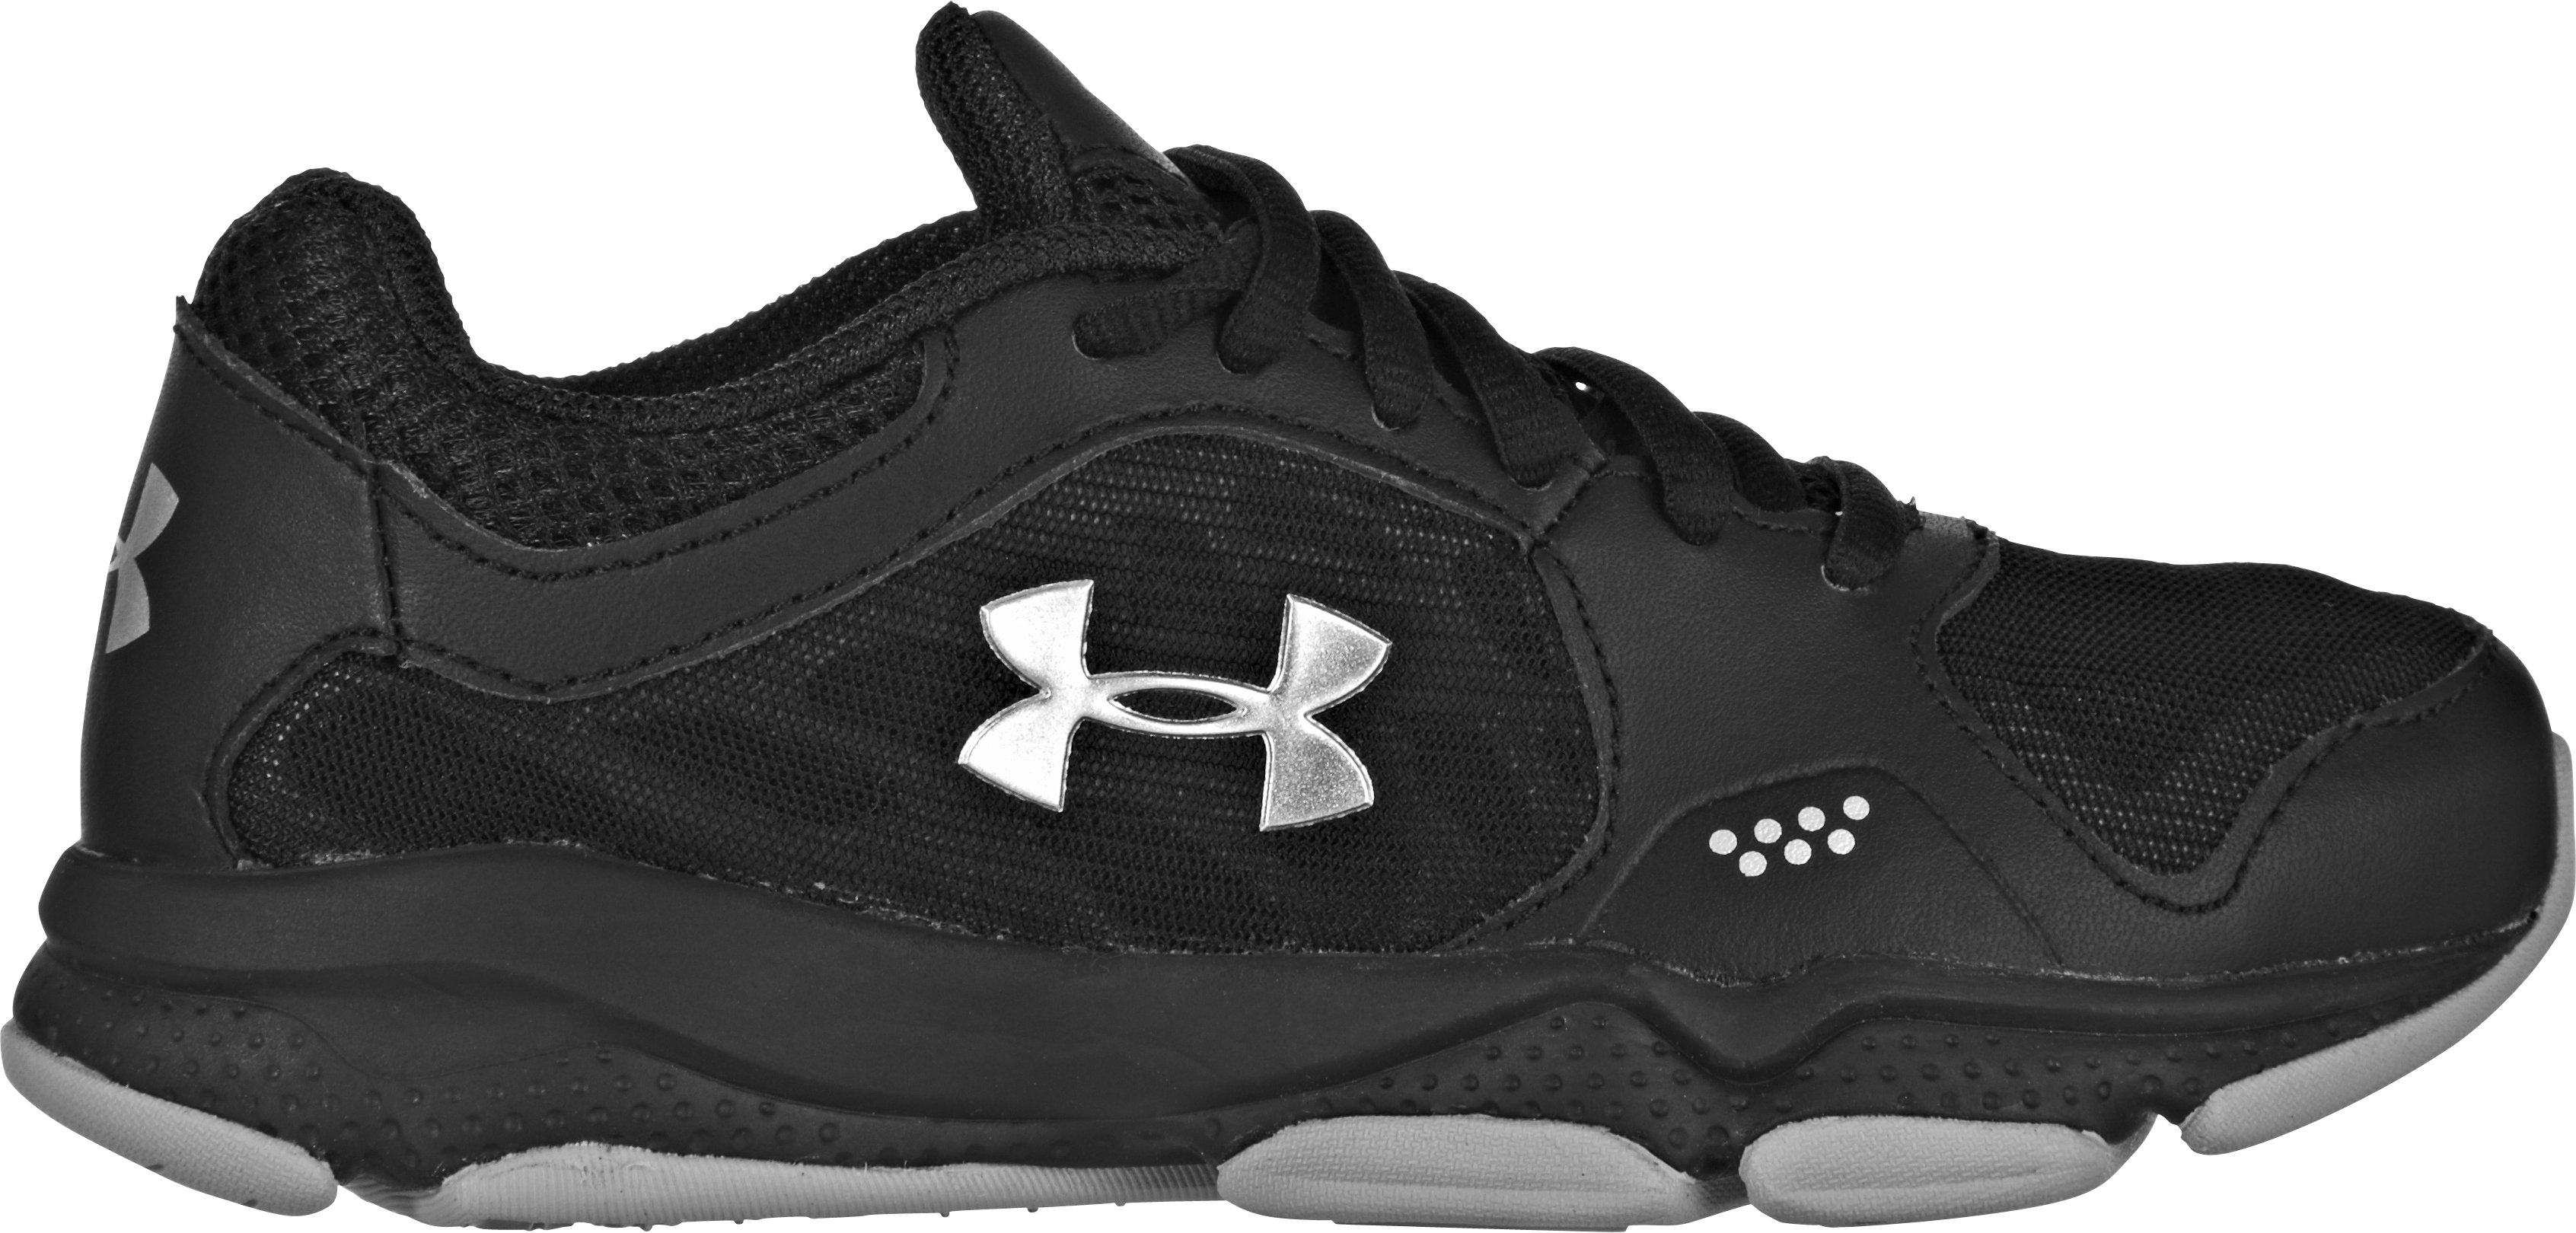 Boys' UA Pulse Pre-School Training Shoes, Black